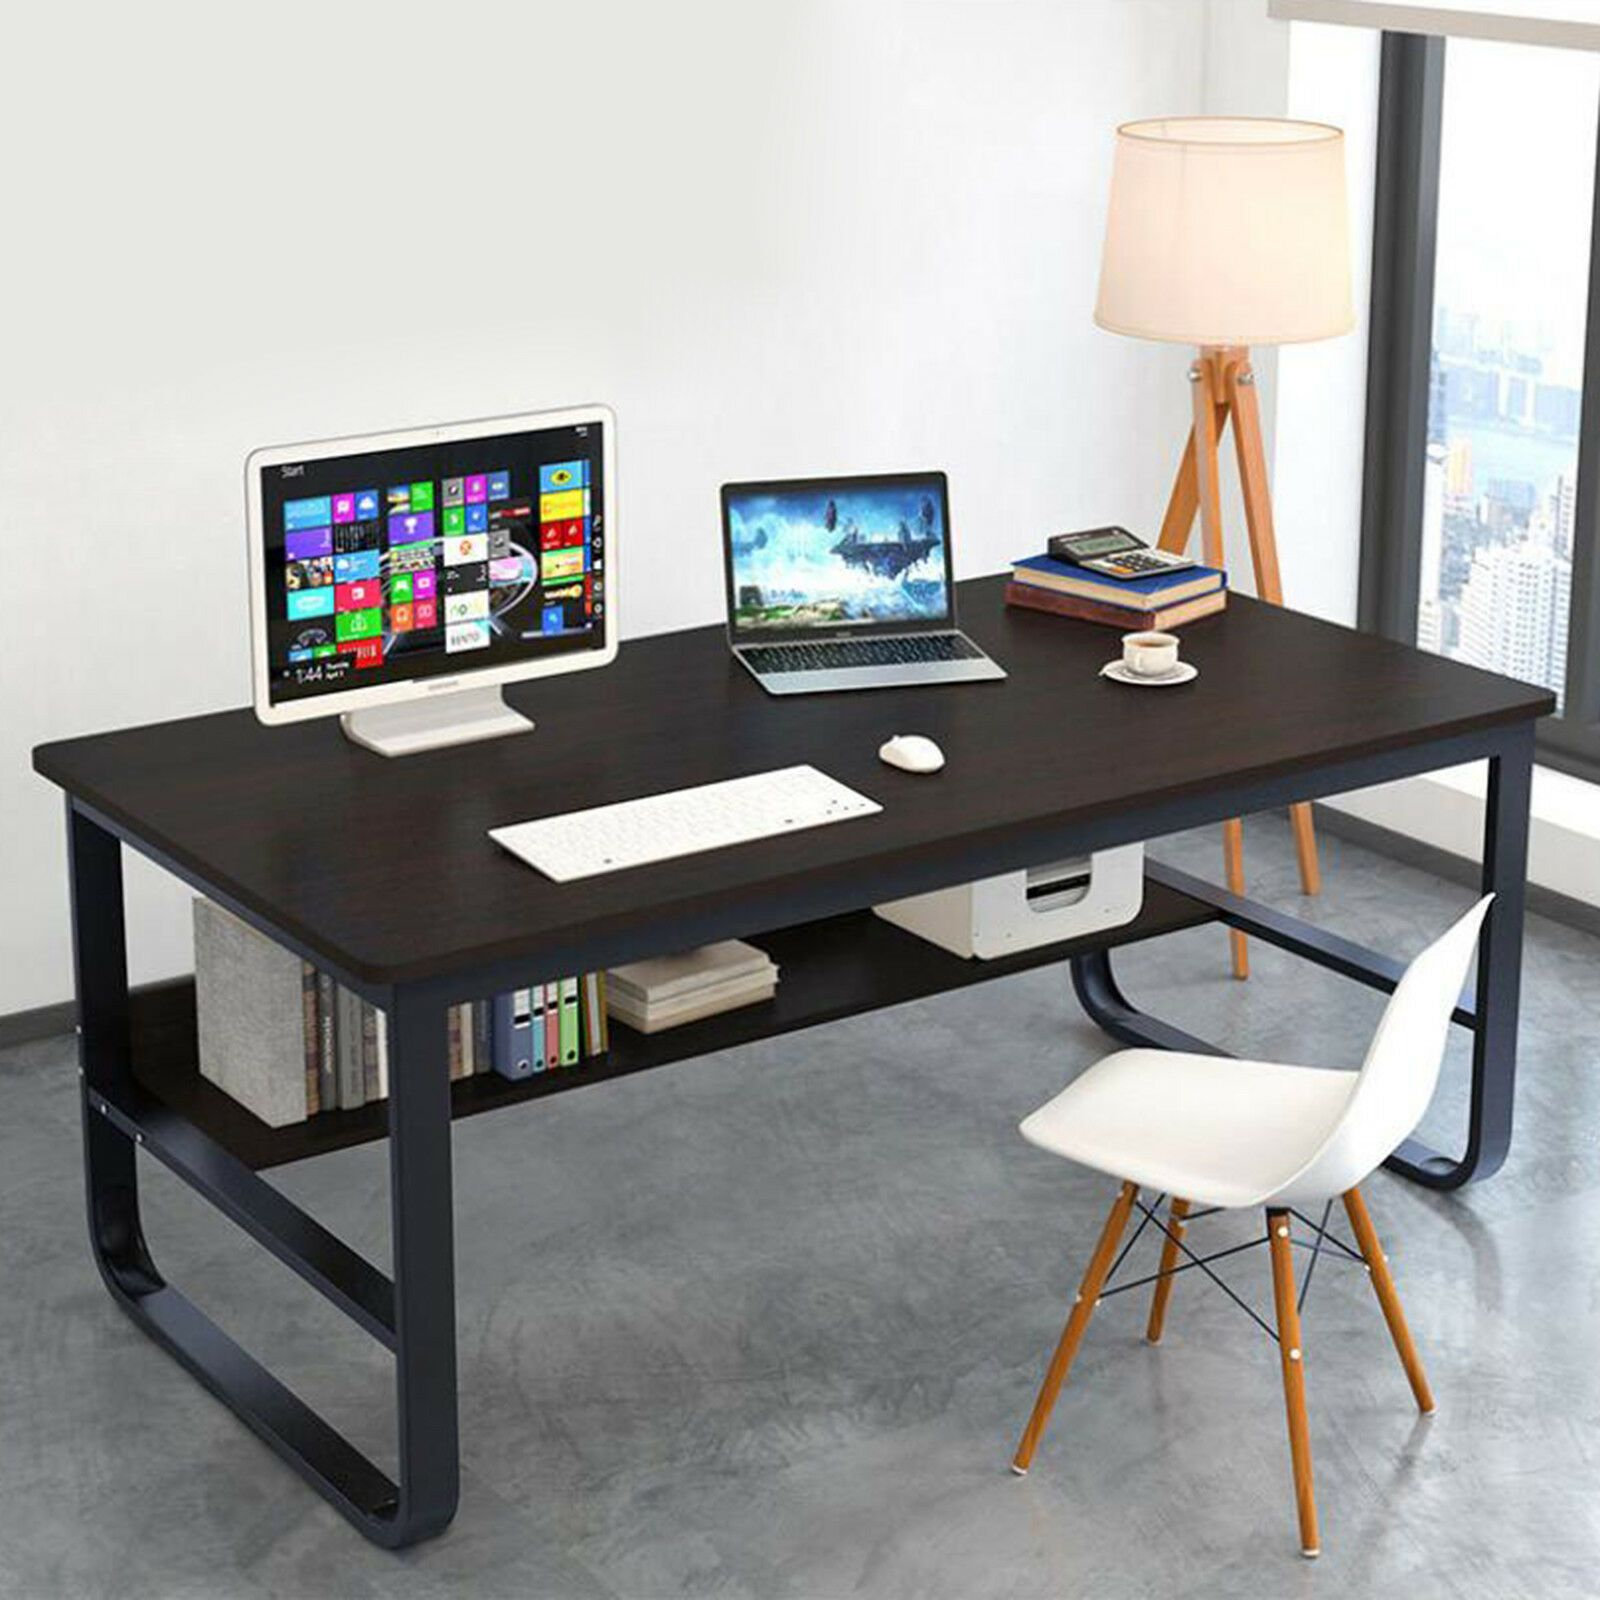 Computer Desk Pc Laptop Table Workstation Study Work Table Home